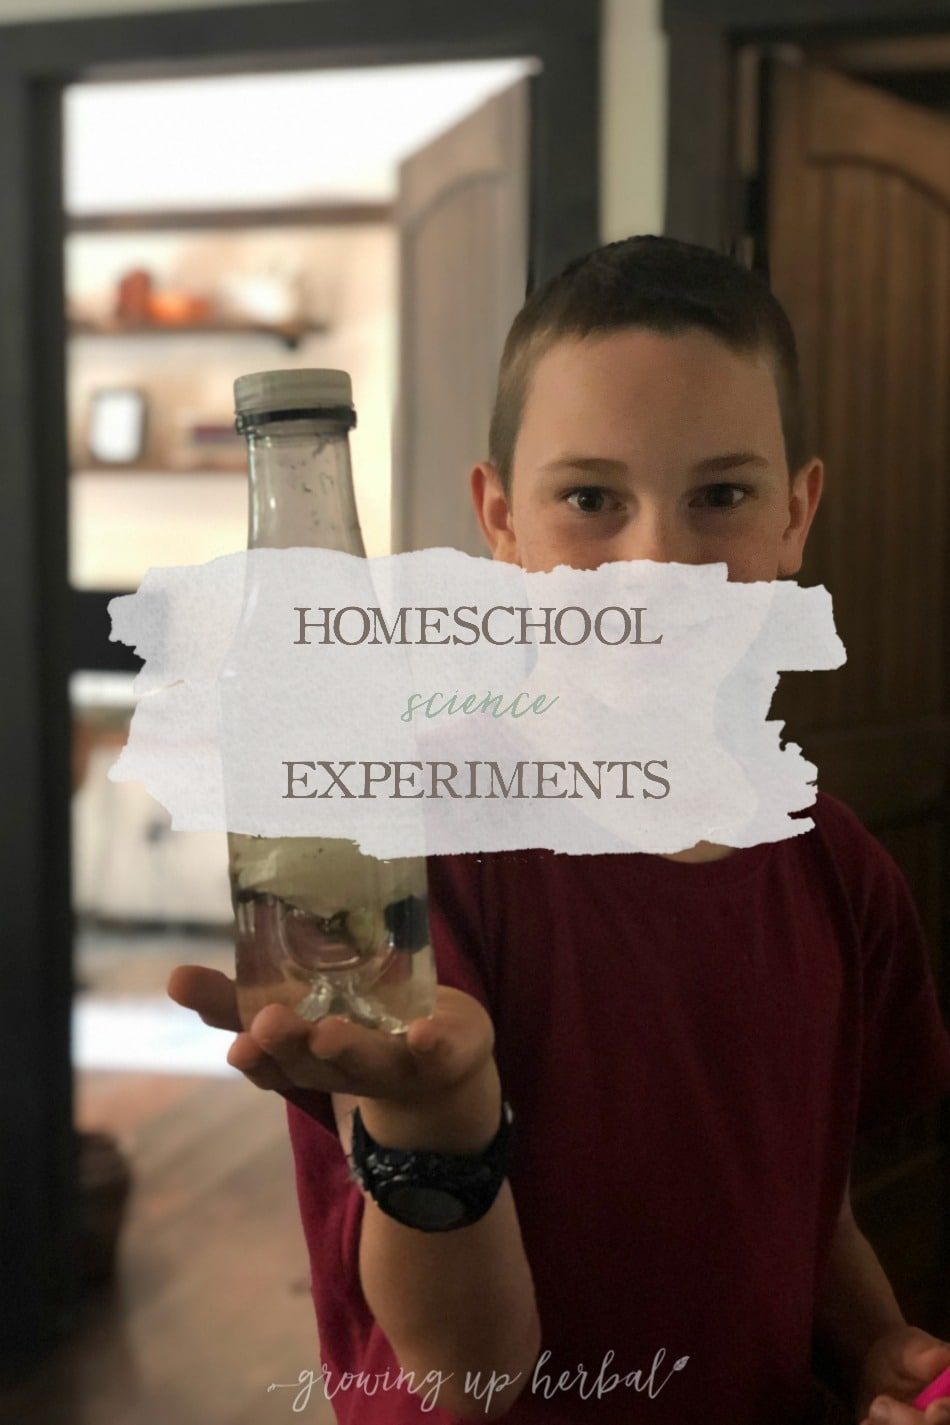 Homeschool Science Experiments | Growing Up Herbal | Let's talk about homeschool science experiments. How much time and effort do you put into them in your homeschool schedule?